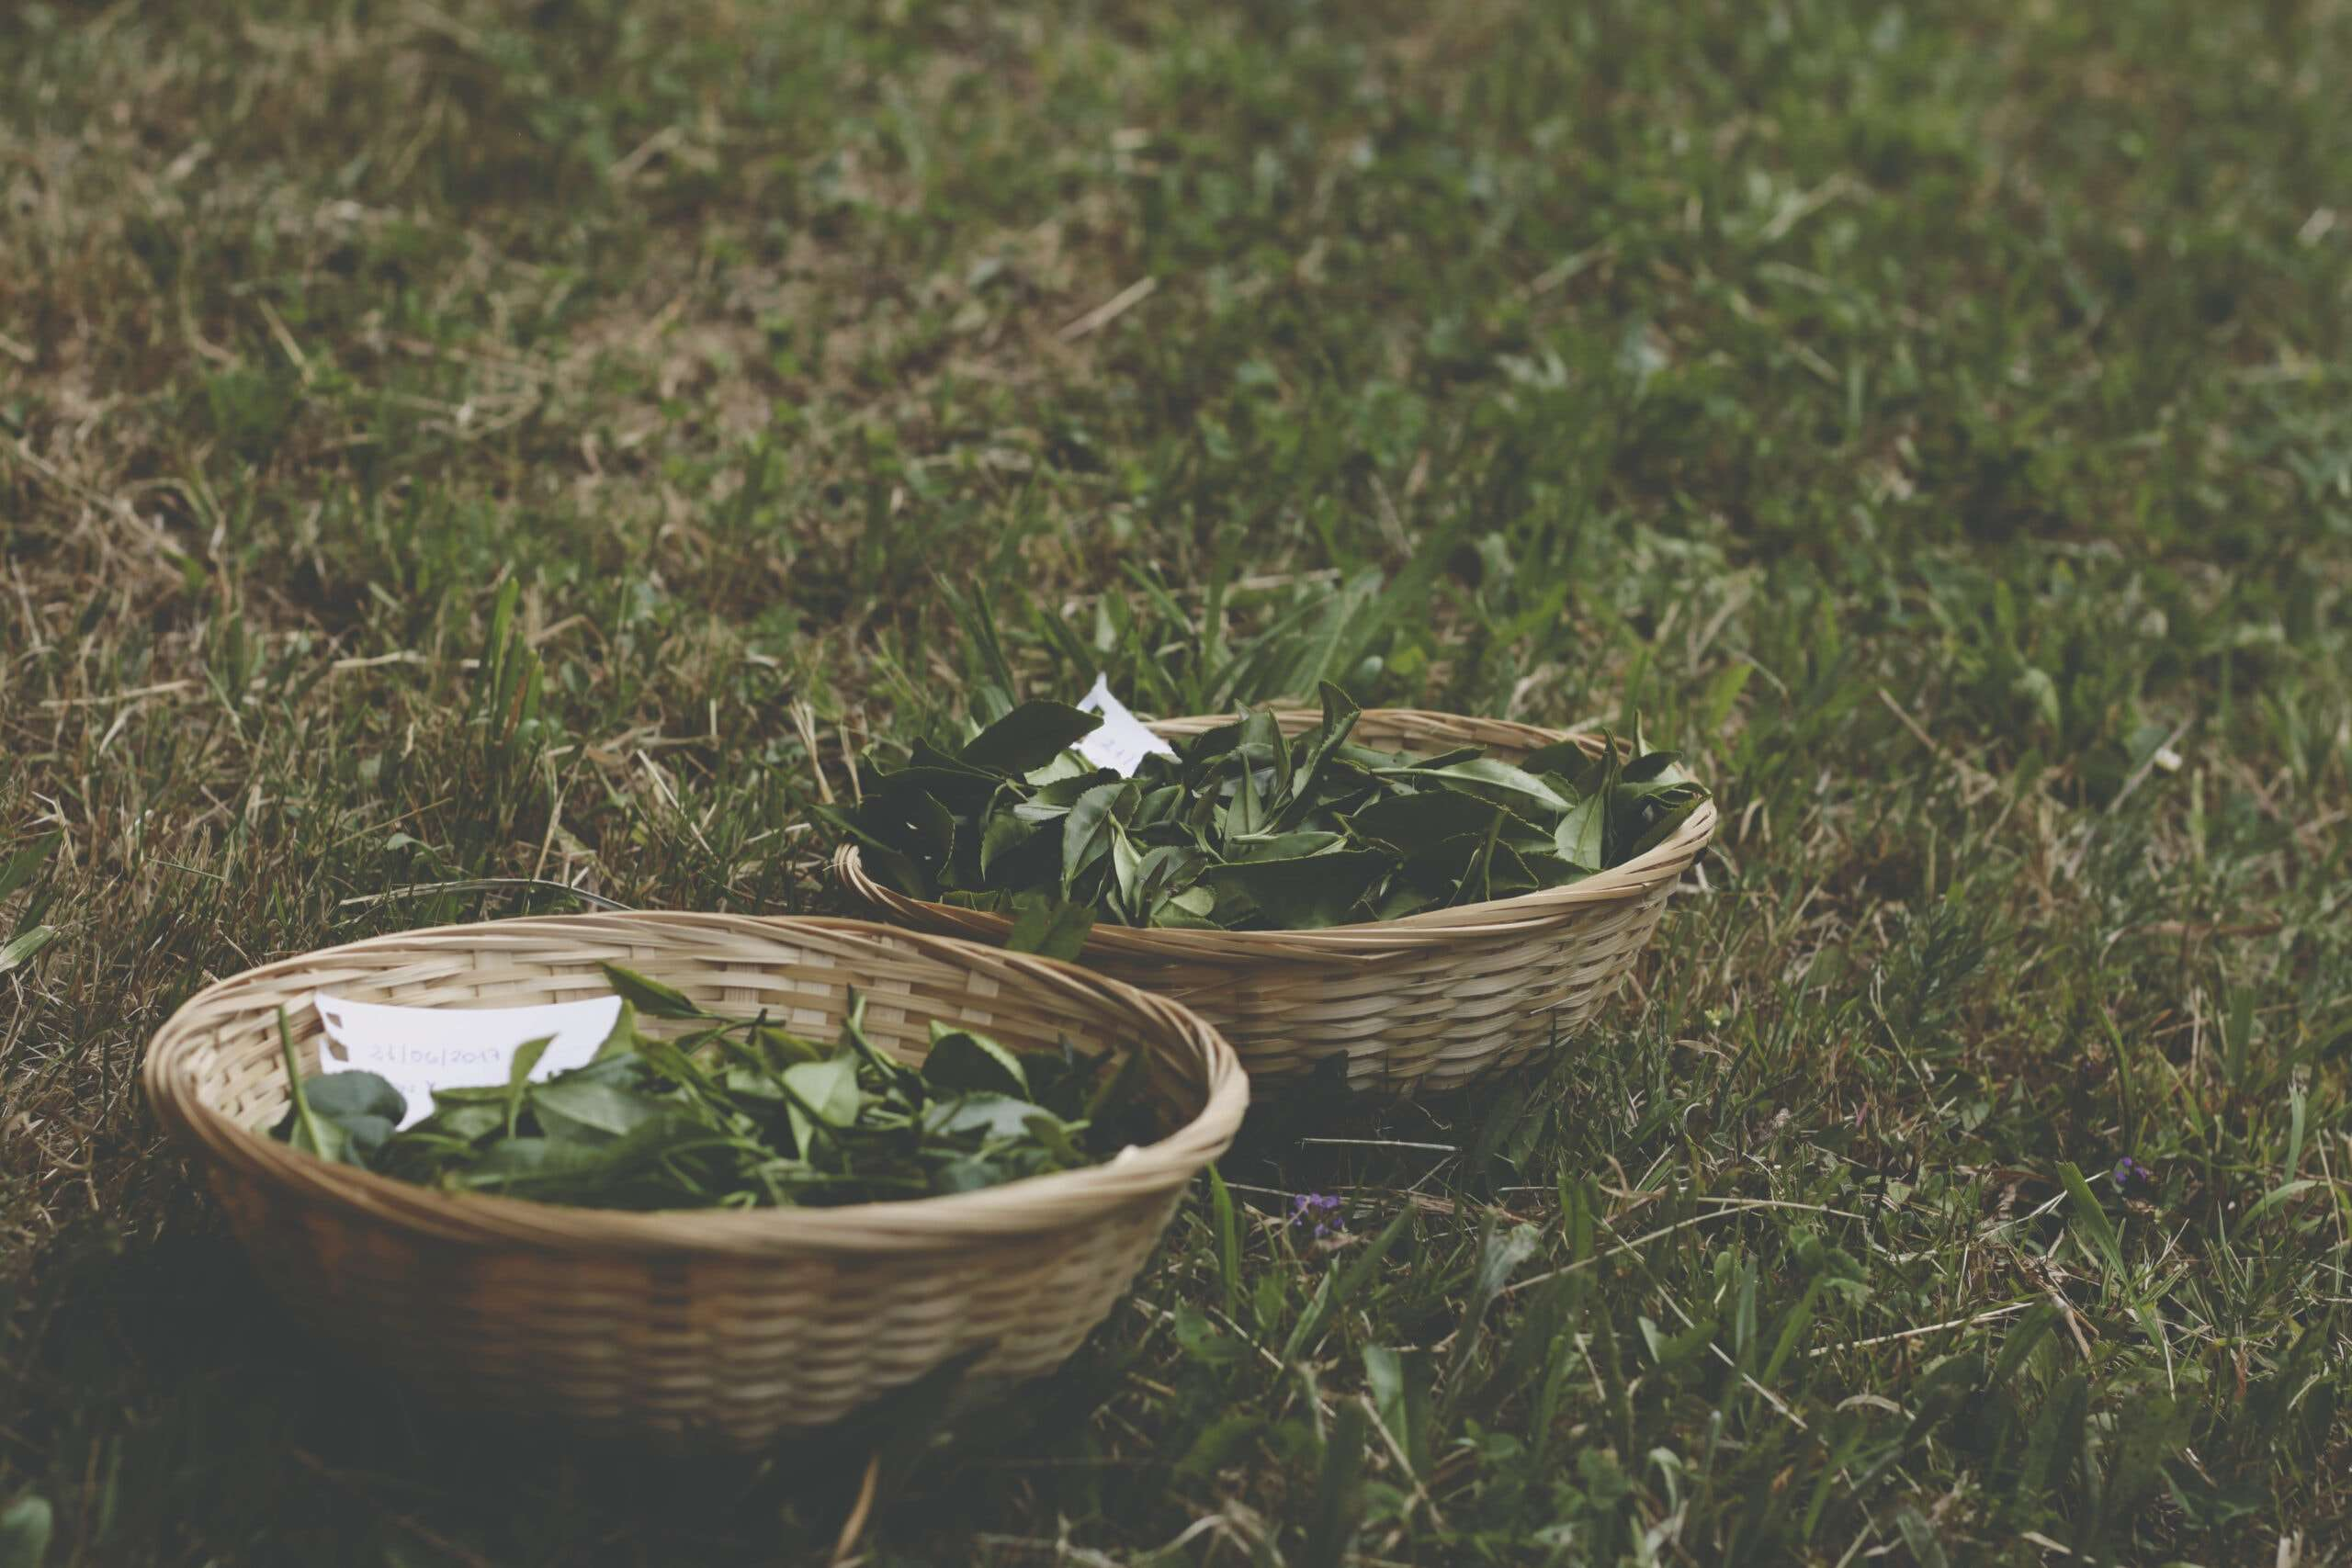 Photo of two baskets on the ground of freshly-harvested tea leaves at a tea plantation in Spain